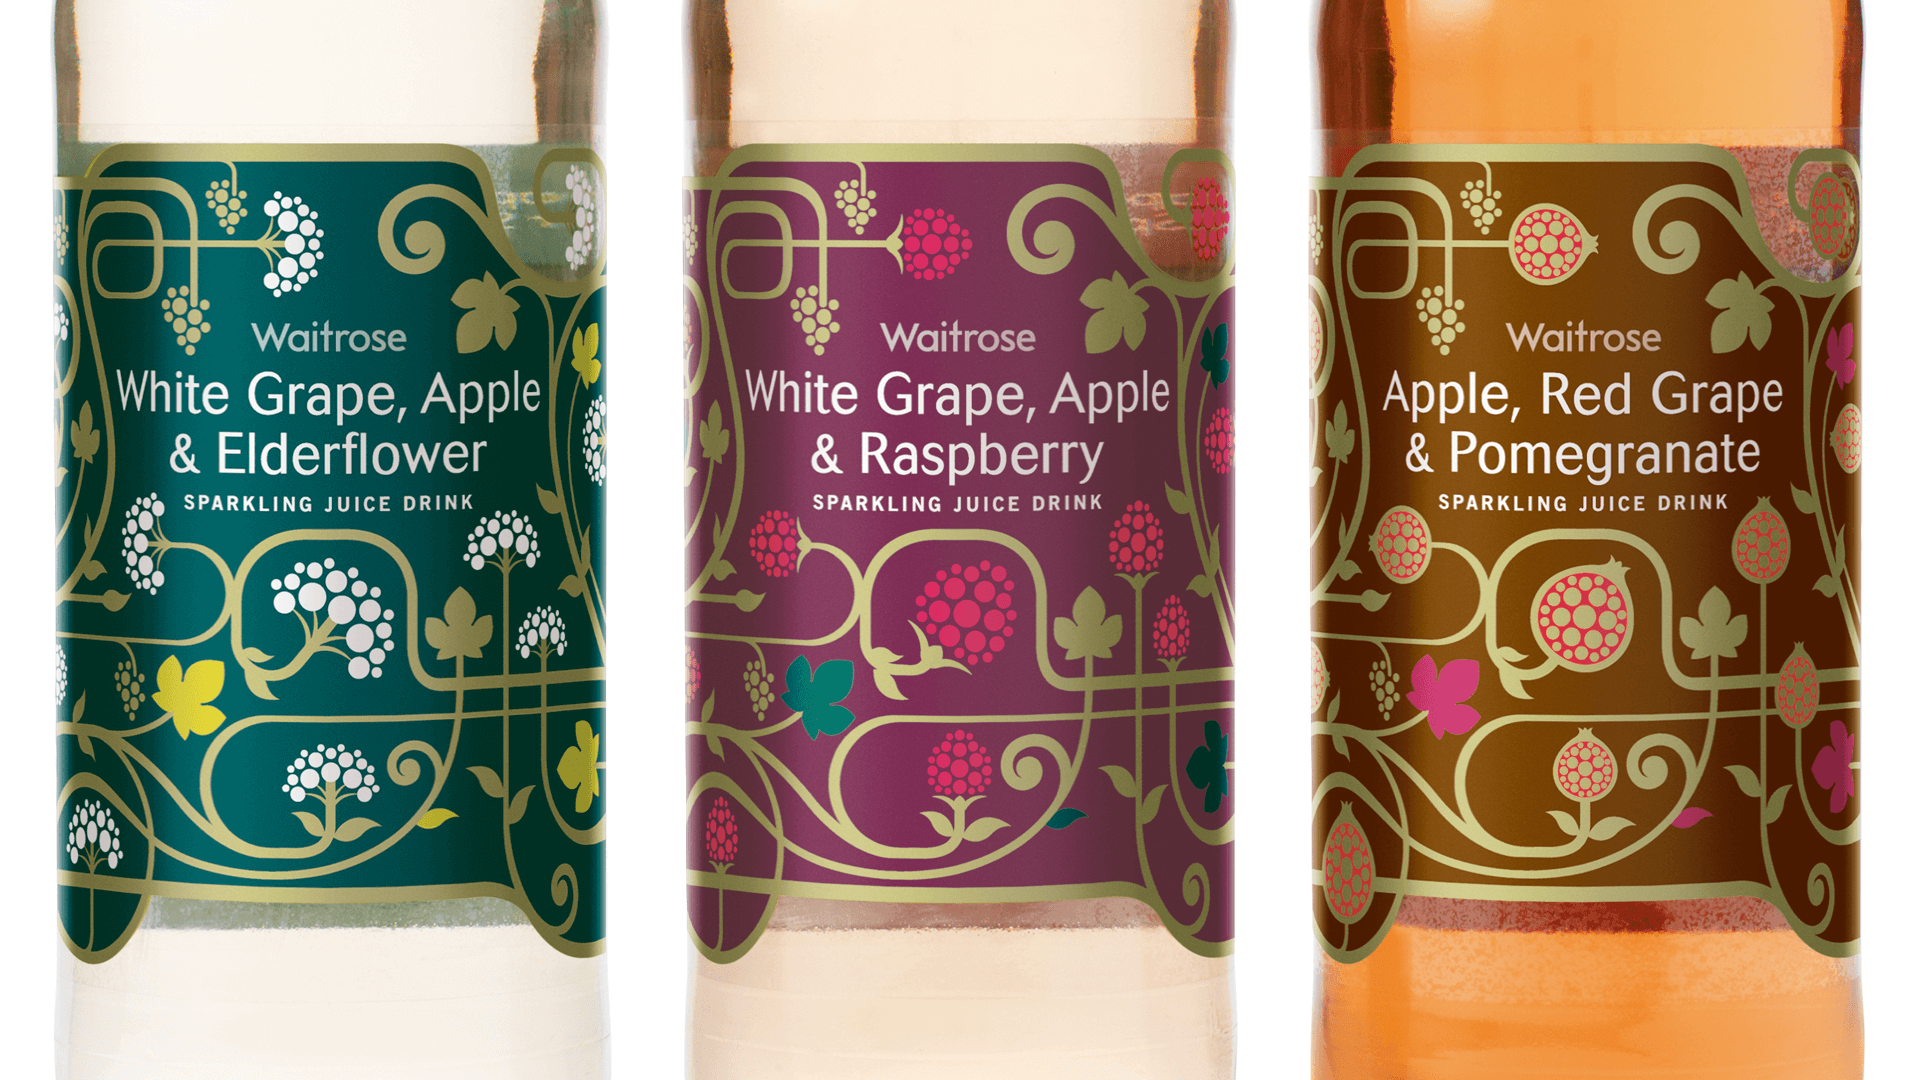 Waitrose Sparkling Juice drinks Award winning Packaging designed by Mutiny Agency and Turner Duckworth London. Beautiful botanical graphics and illustrations by Mutiny Agency.  Waitrose White Grape, Apple and Elderflower sparkling juice drink bottle label botanical design created by Mutiny Agency. Waitrose White Grape, Apple and Raspberry Sparkling juice drink, botanical design created by Mutiny Agency. Waitrose Apple, Red Grape and Pomegranate label design by Mutiny Agency.